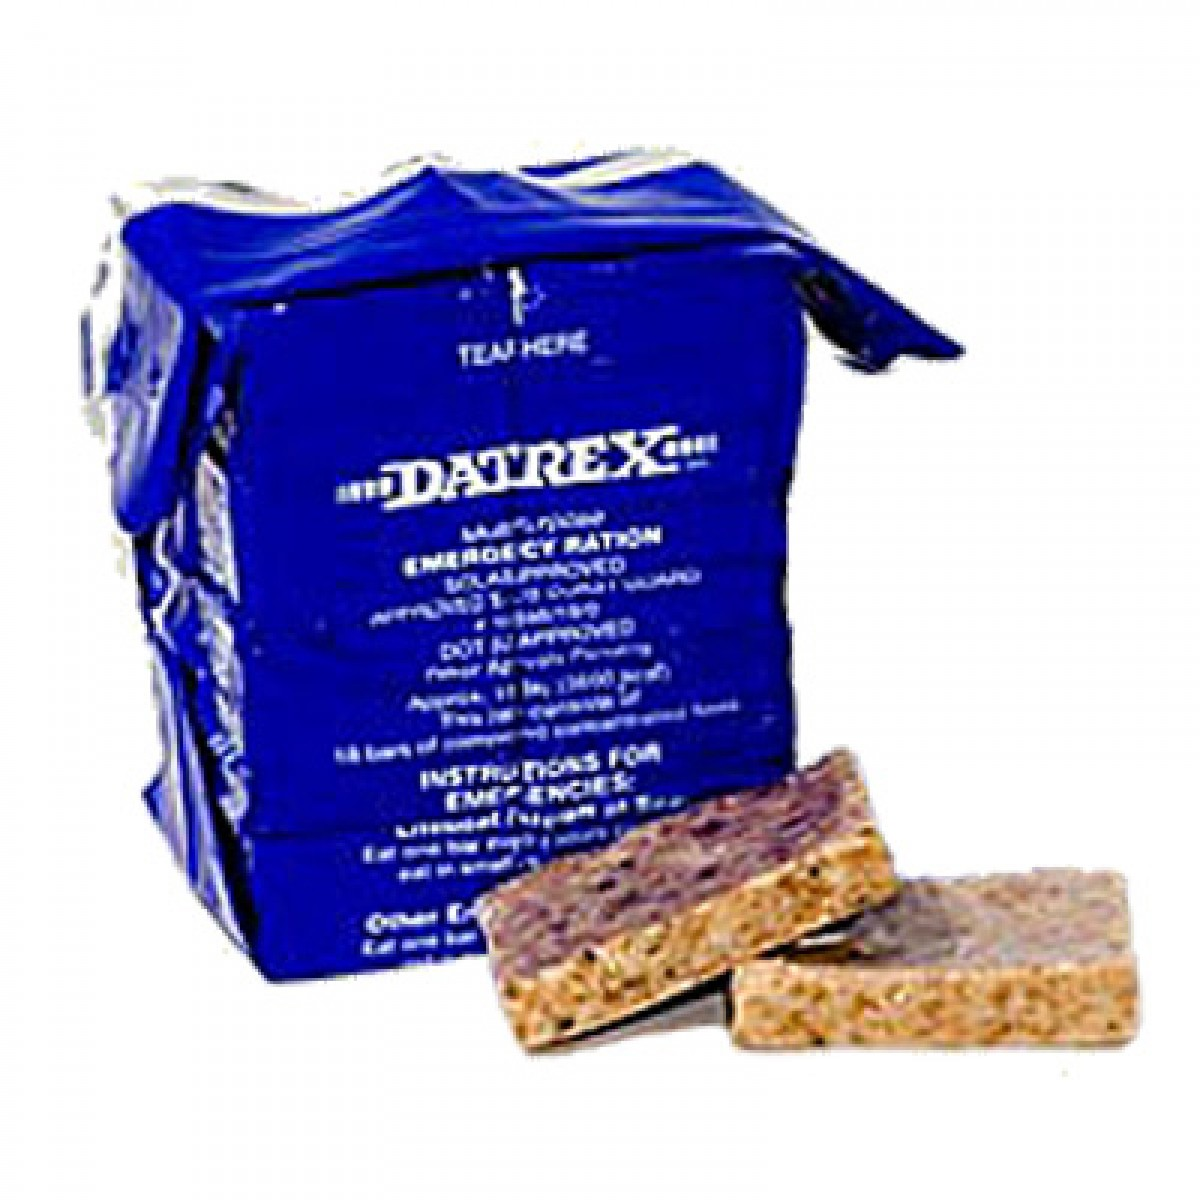 Datrex emergency food ration bar civic safety for Food bar borca